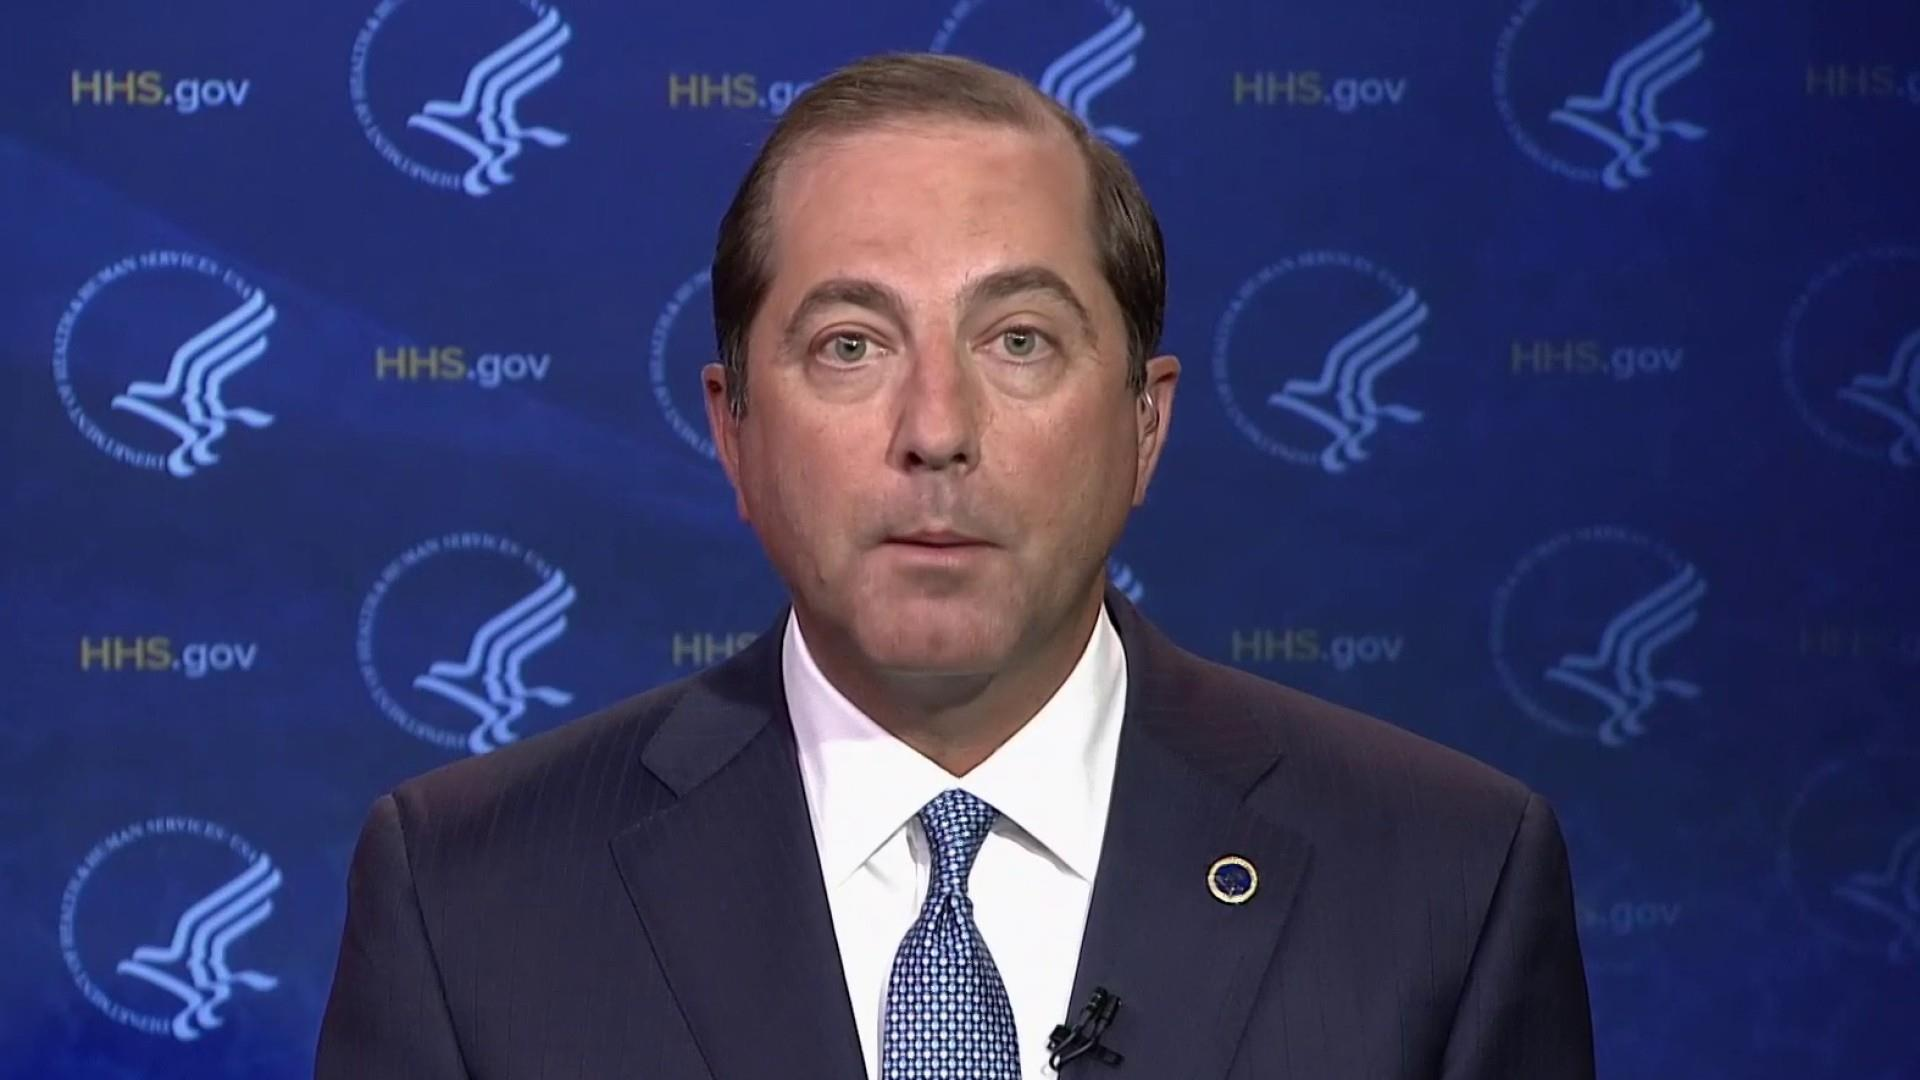 HHS Sec. Azar on plan to import Canadian drugs: 'We're open for business'